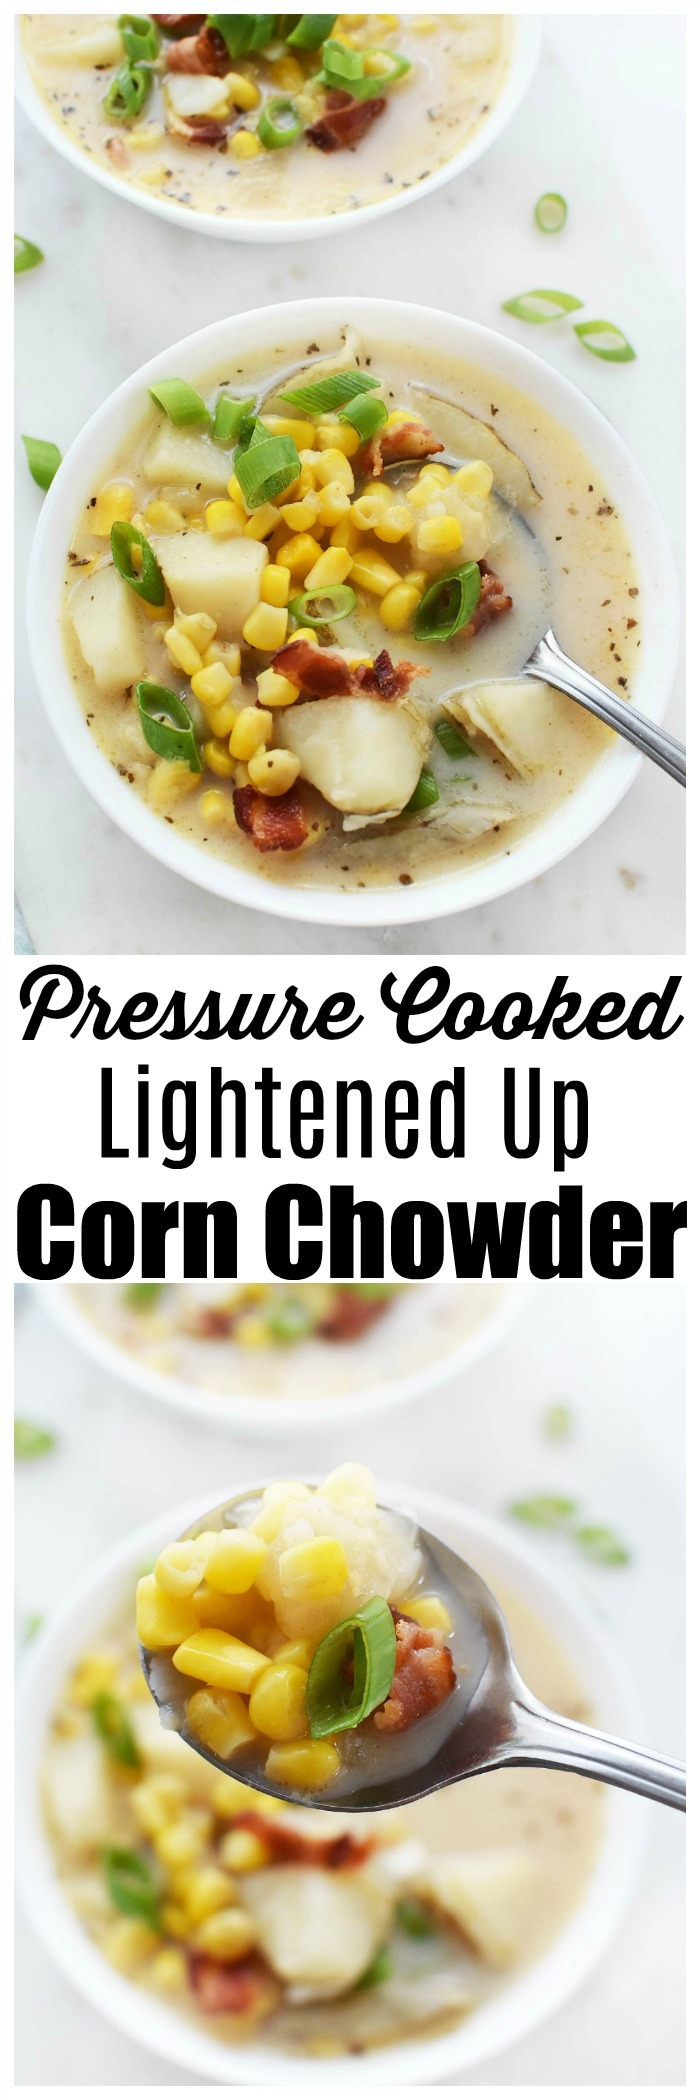 Pressure Cooker Corn Chowder with Bacon